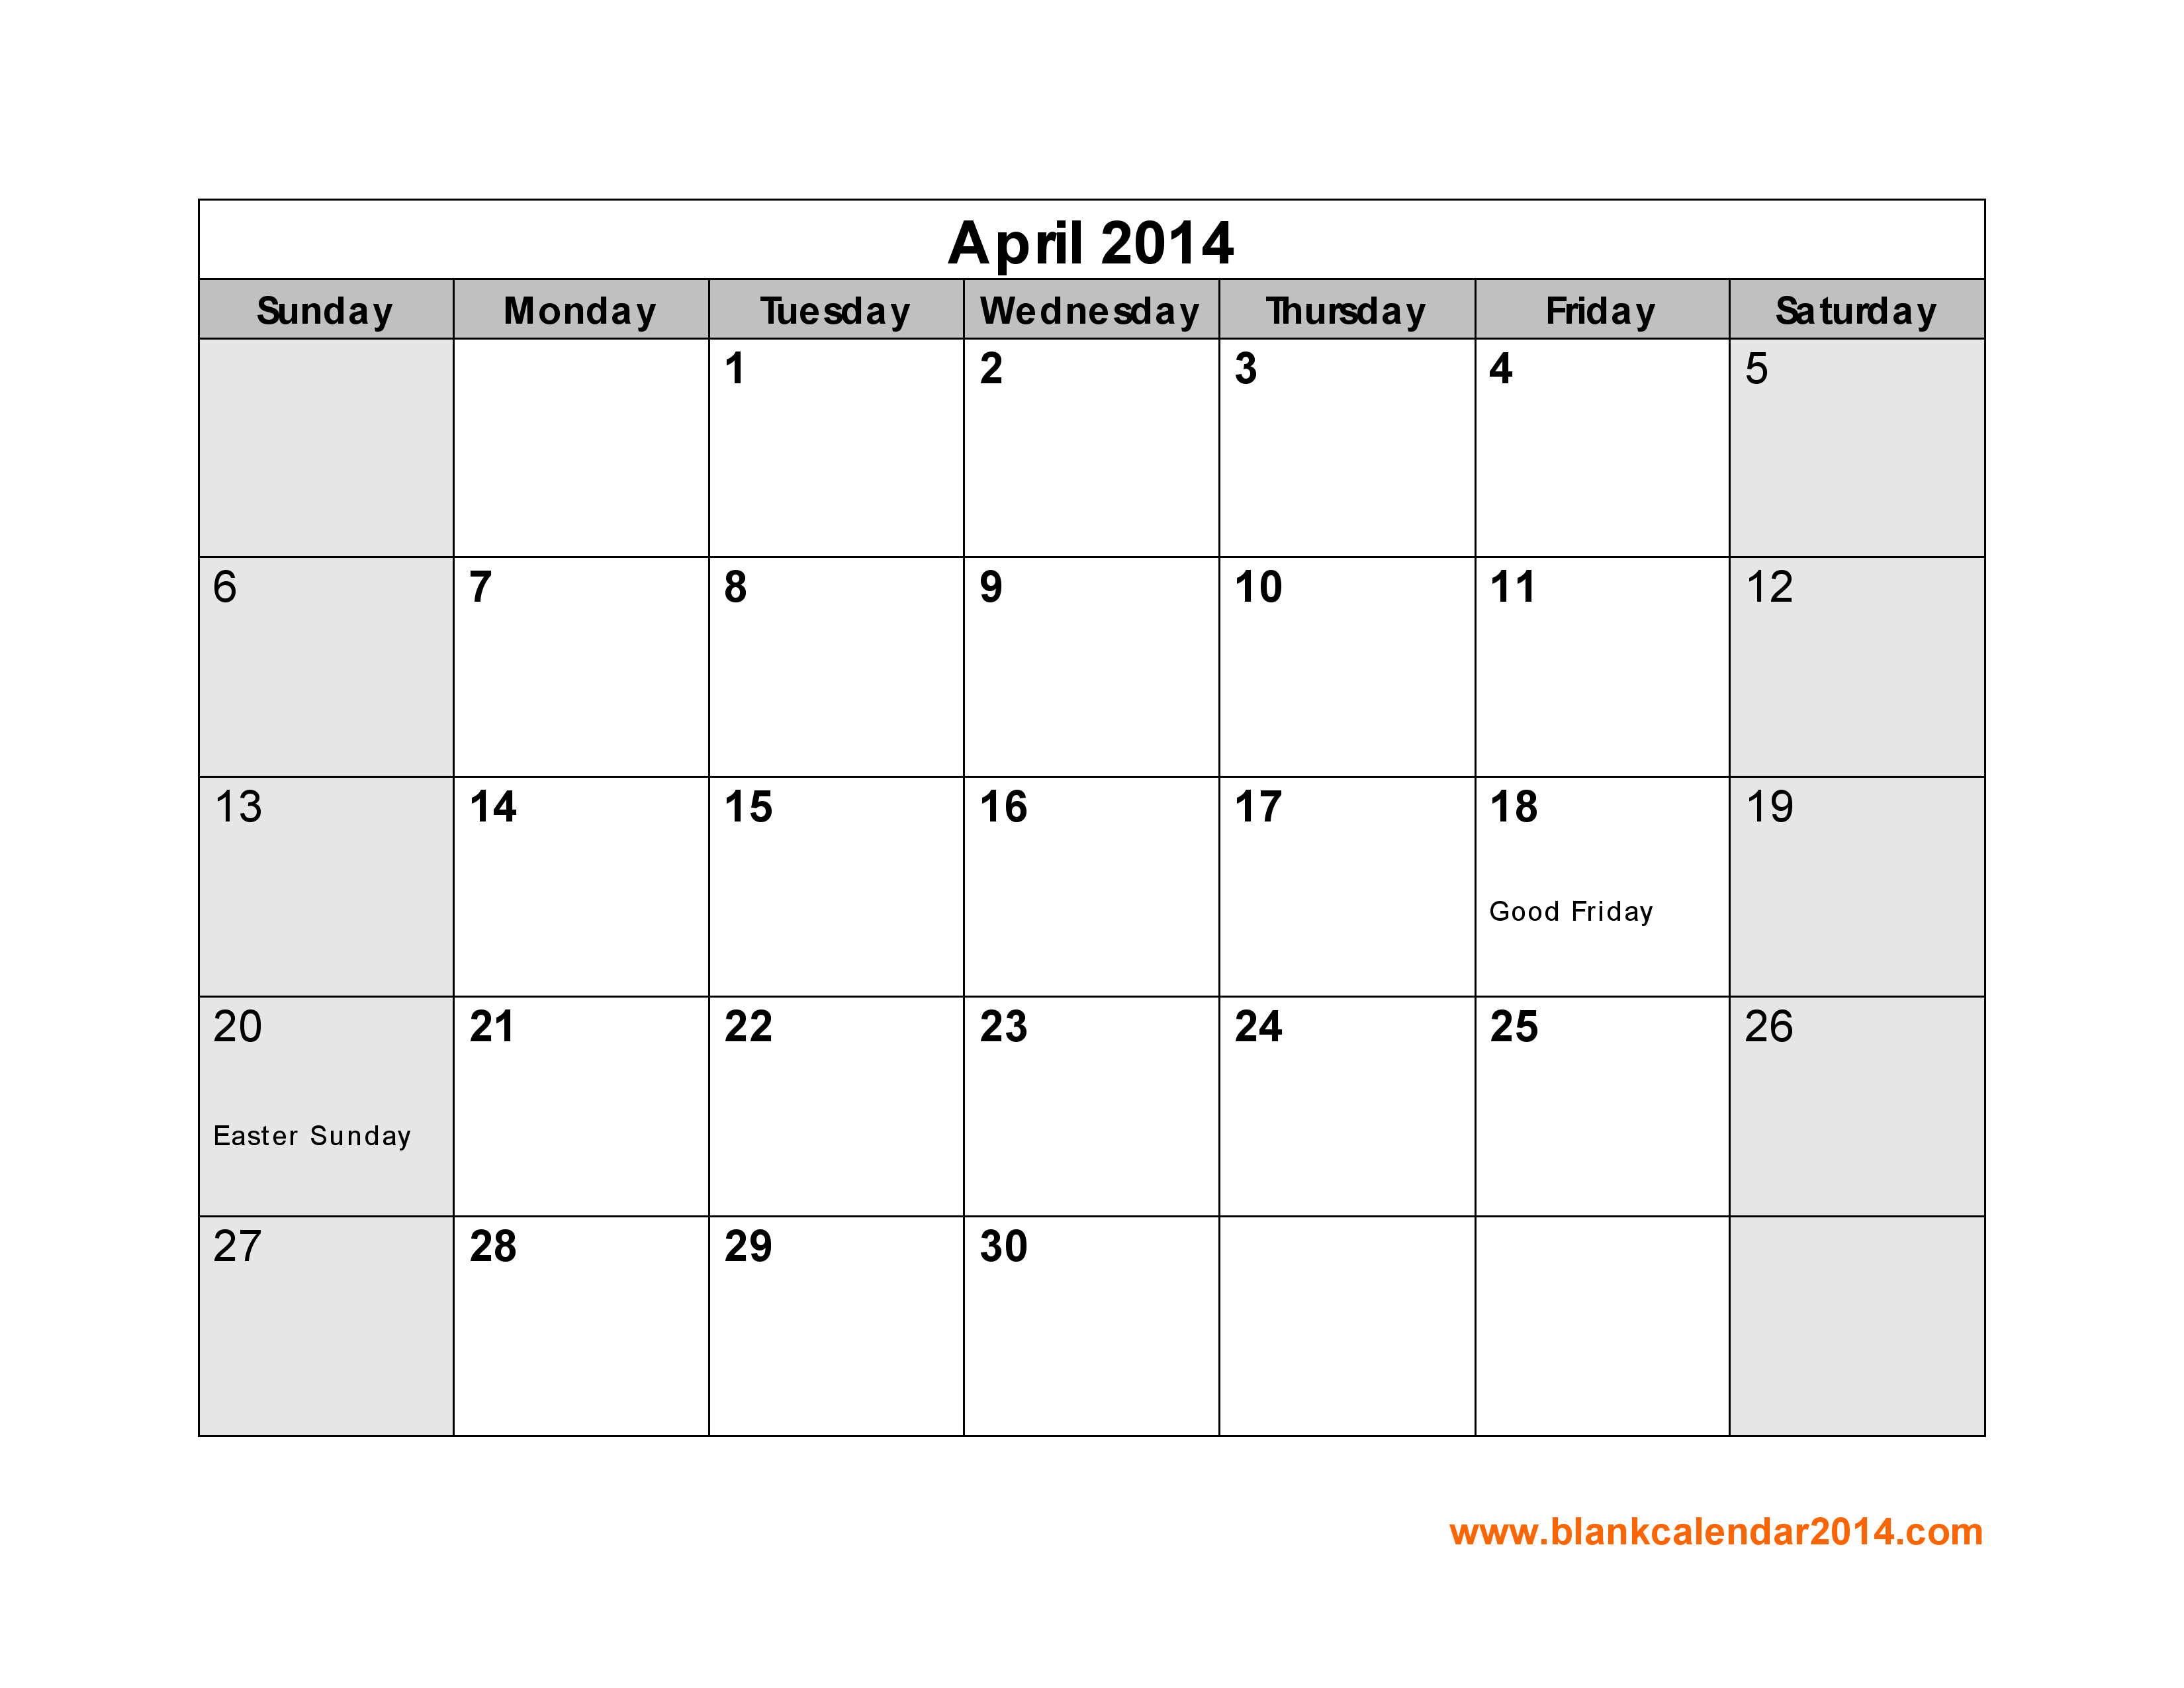 Calendar Printable With Holidays For The Month Of